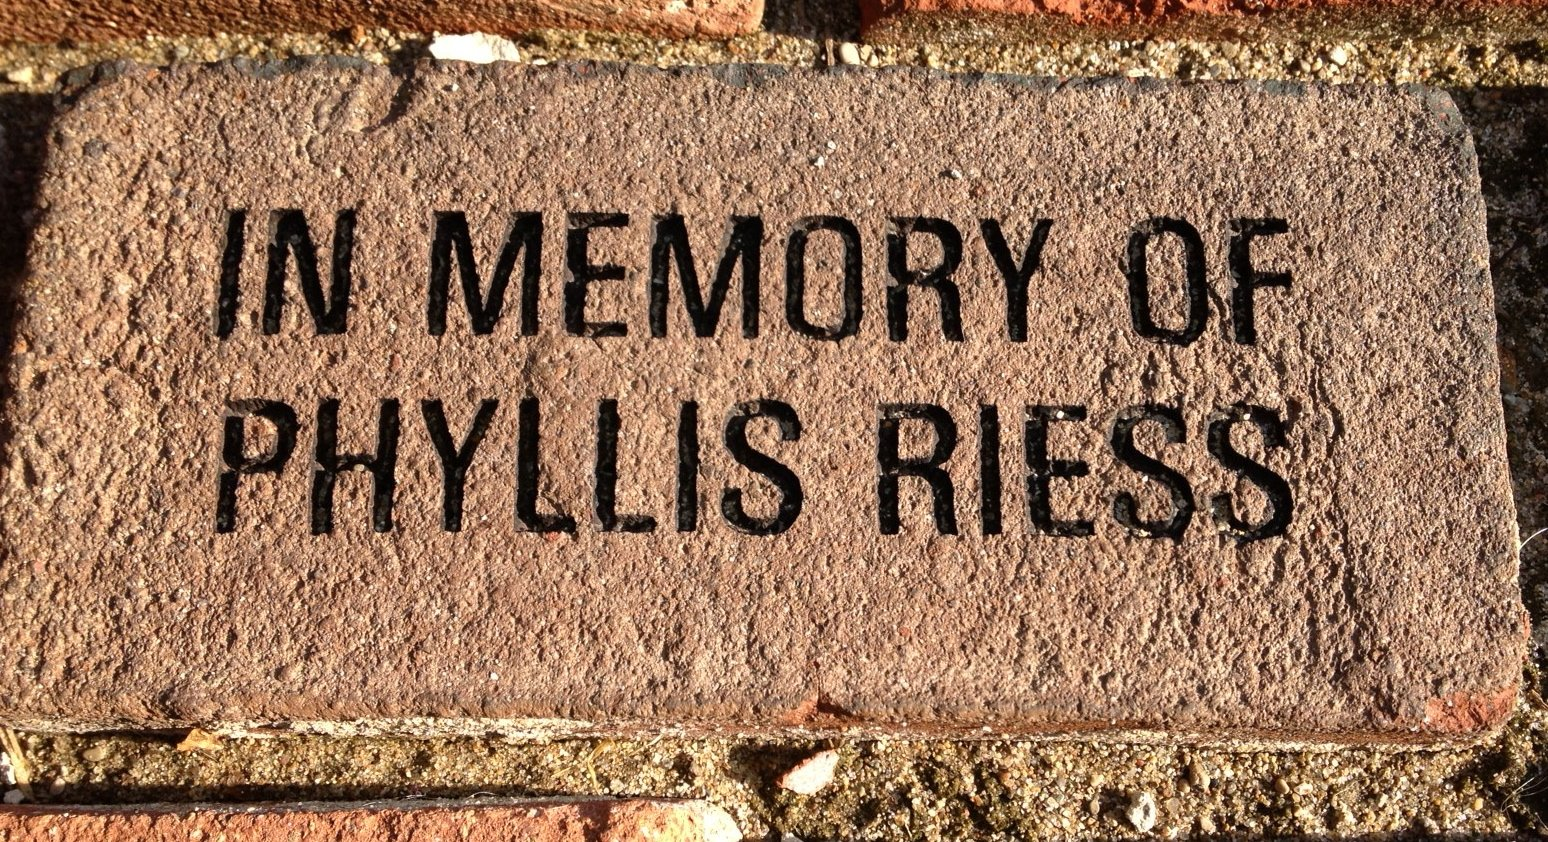 This brick is now in the walkway leading up to our neighborhood library. I think my mom, who loved to read, would be pleased. Today is the six-month anniversary of her death. (Author photo)